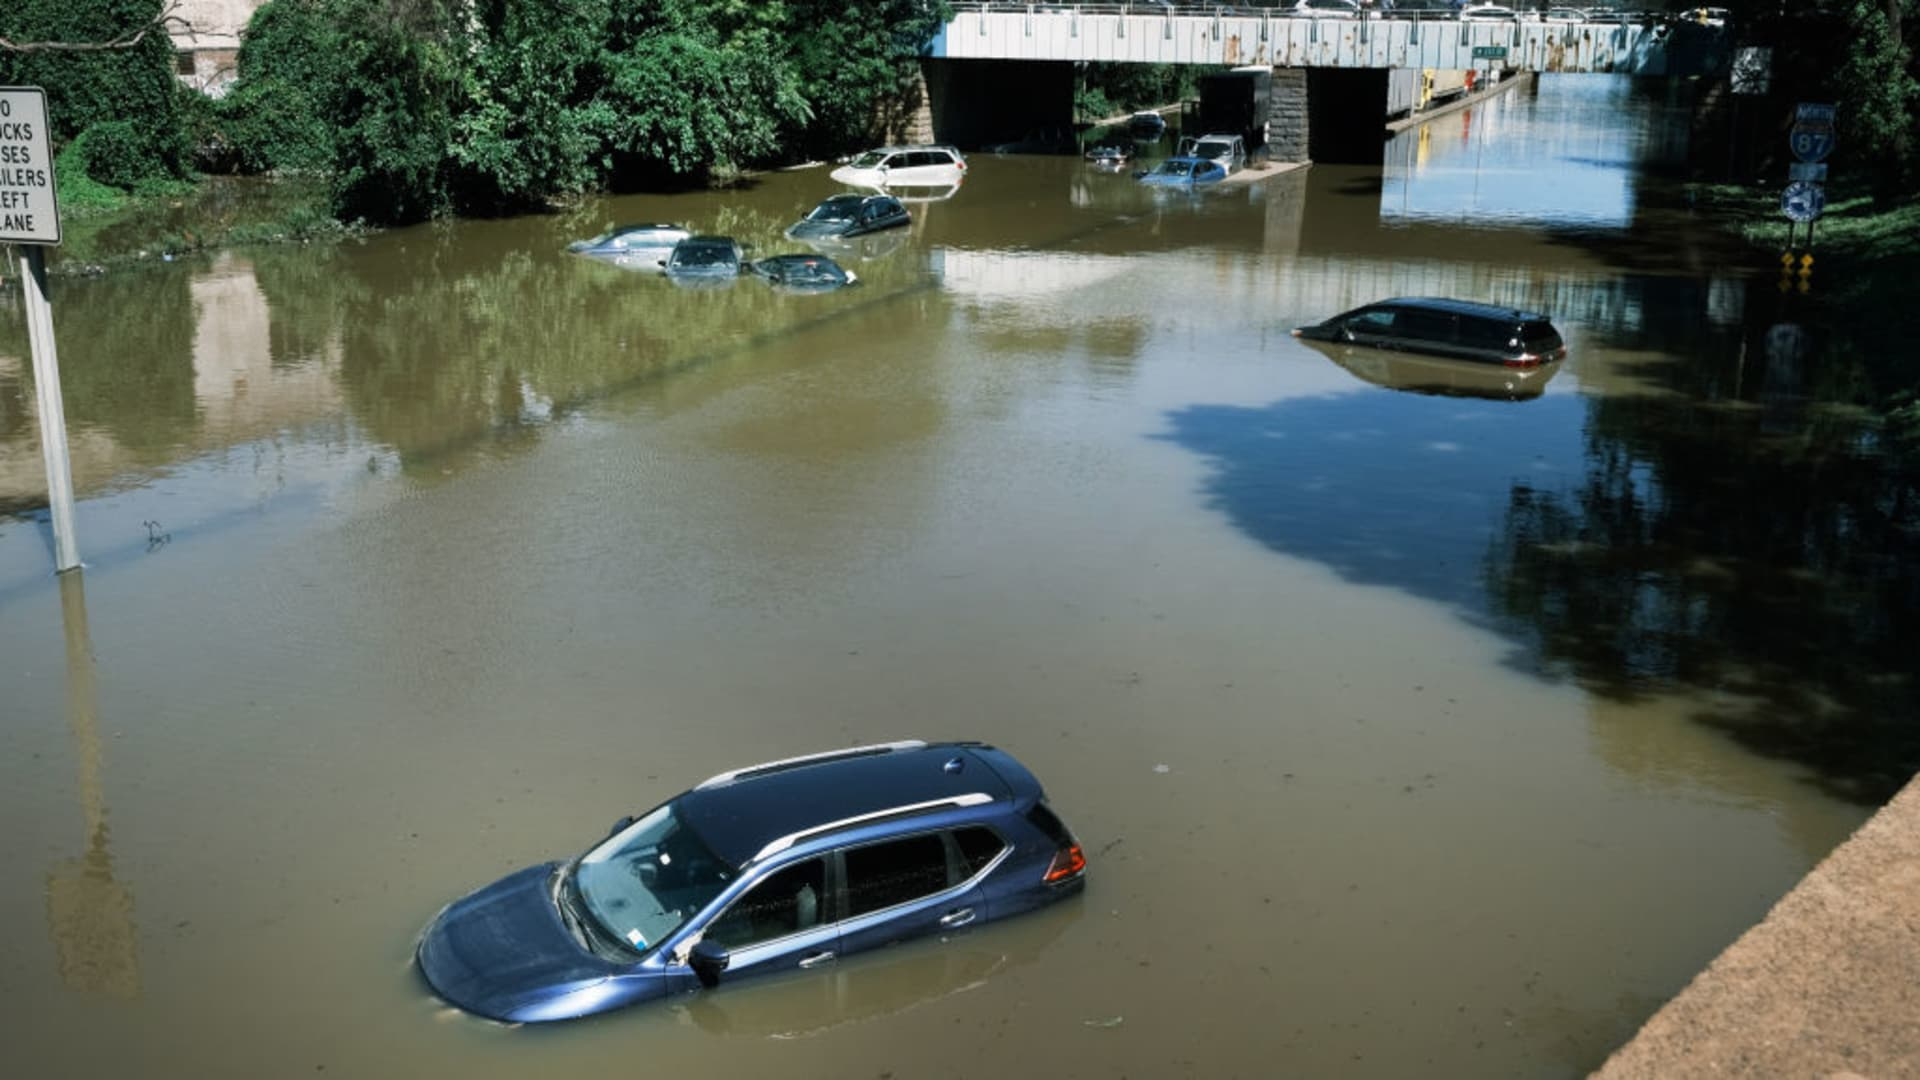 Cars sit abandoned on the flooded Major Deegan Expressway following a night of extremely heavy rain from the remnants of Hurricane Ida on September 2, 2021 in the Bronx borough of New York City.